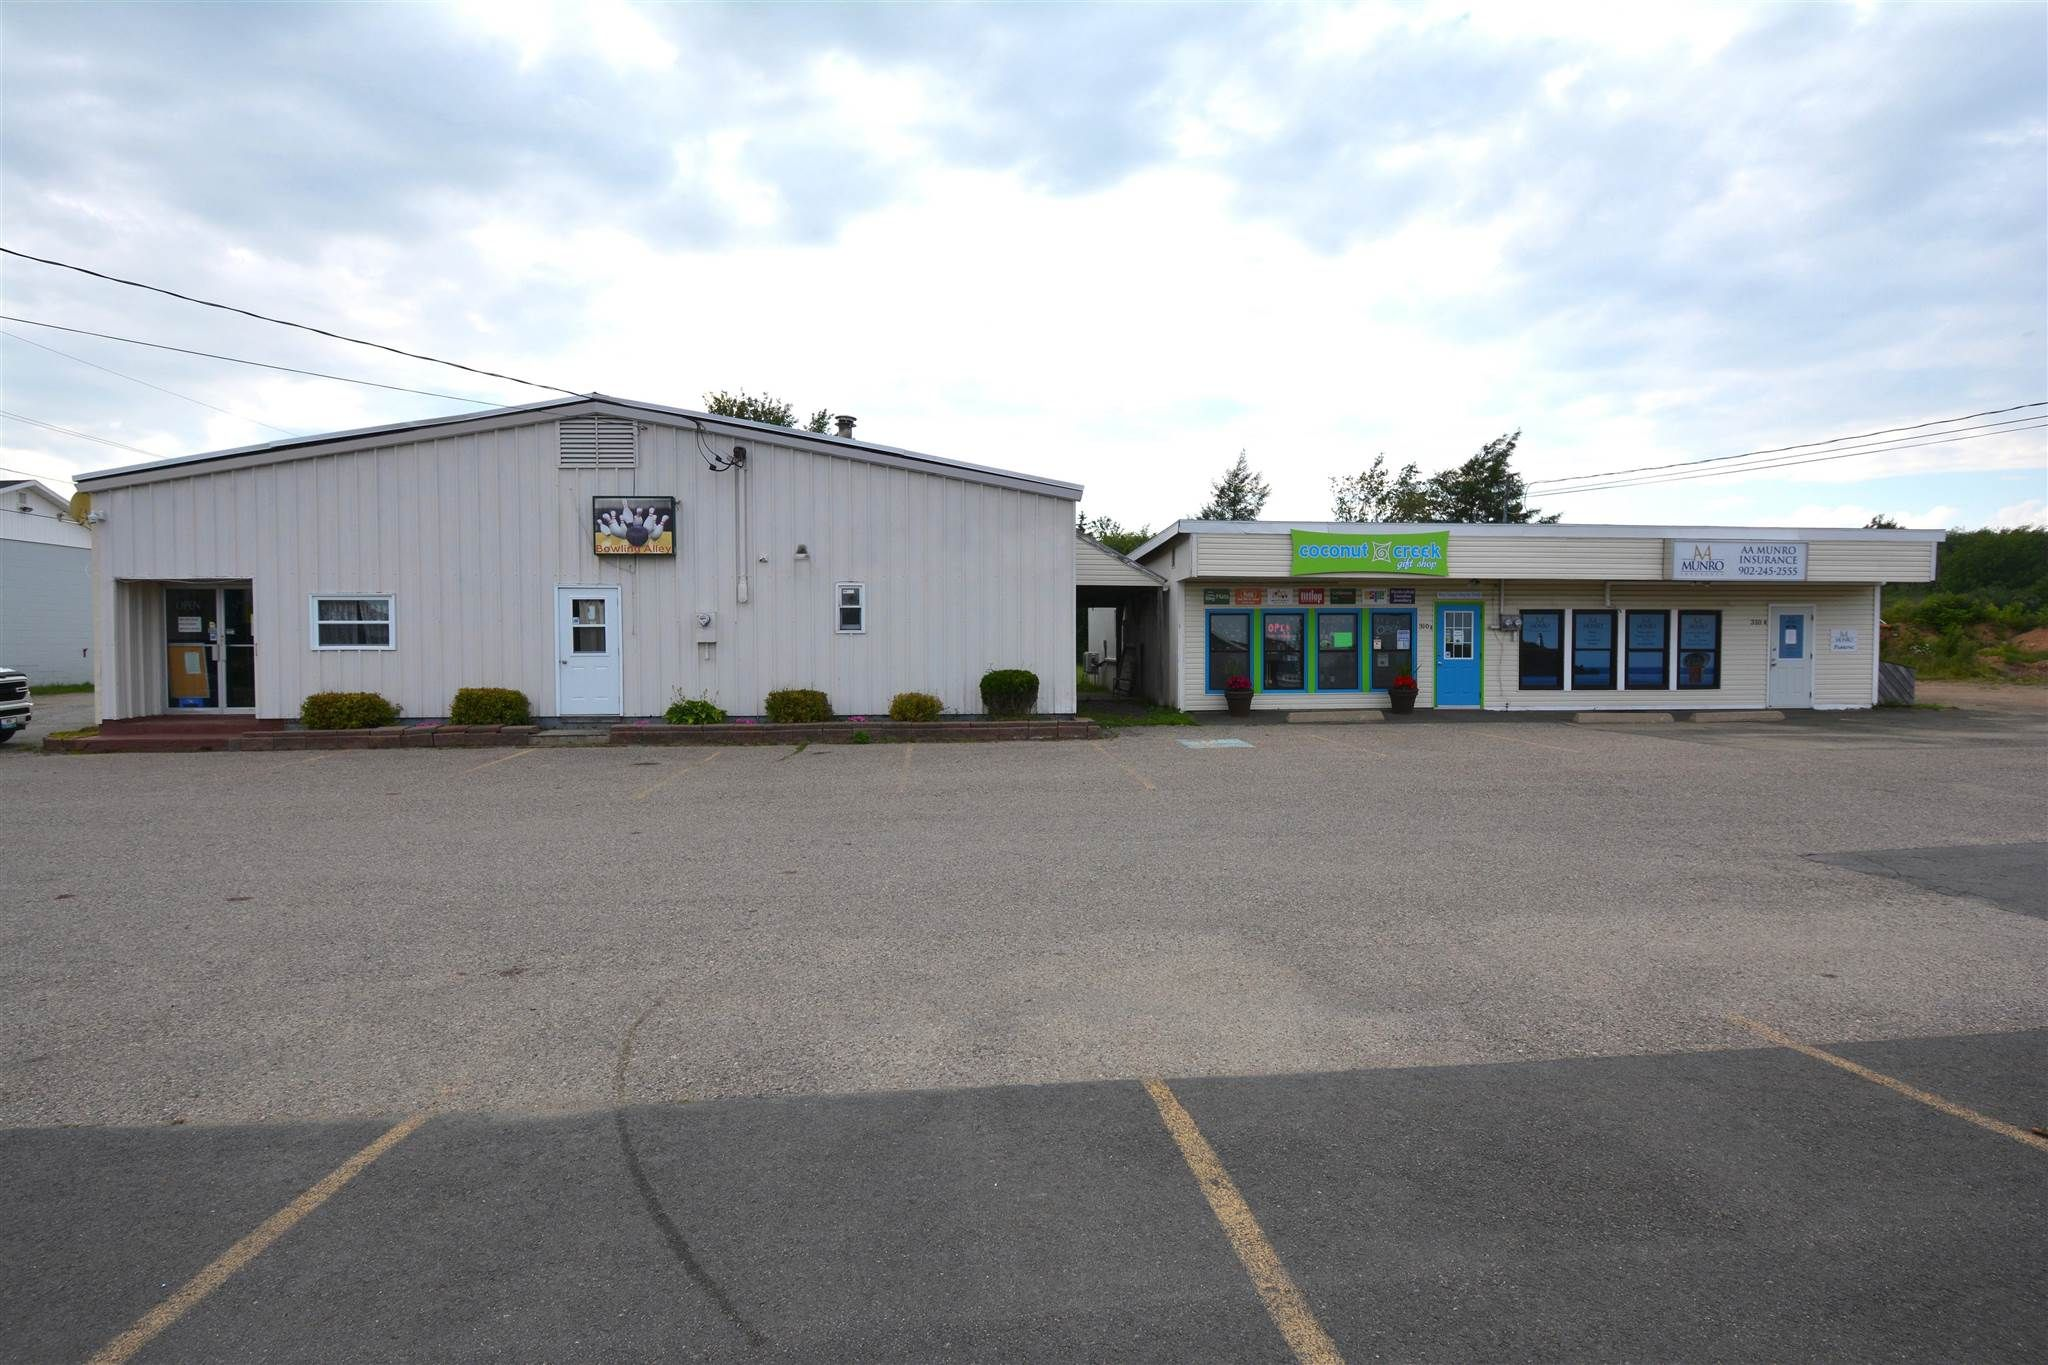 Main Photo: 310/312 Highway 303 in Conway: 401-Digby County Commercial  (Annapolis Valley)  : MLS®# 202117012